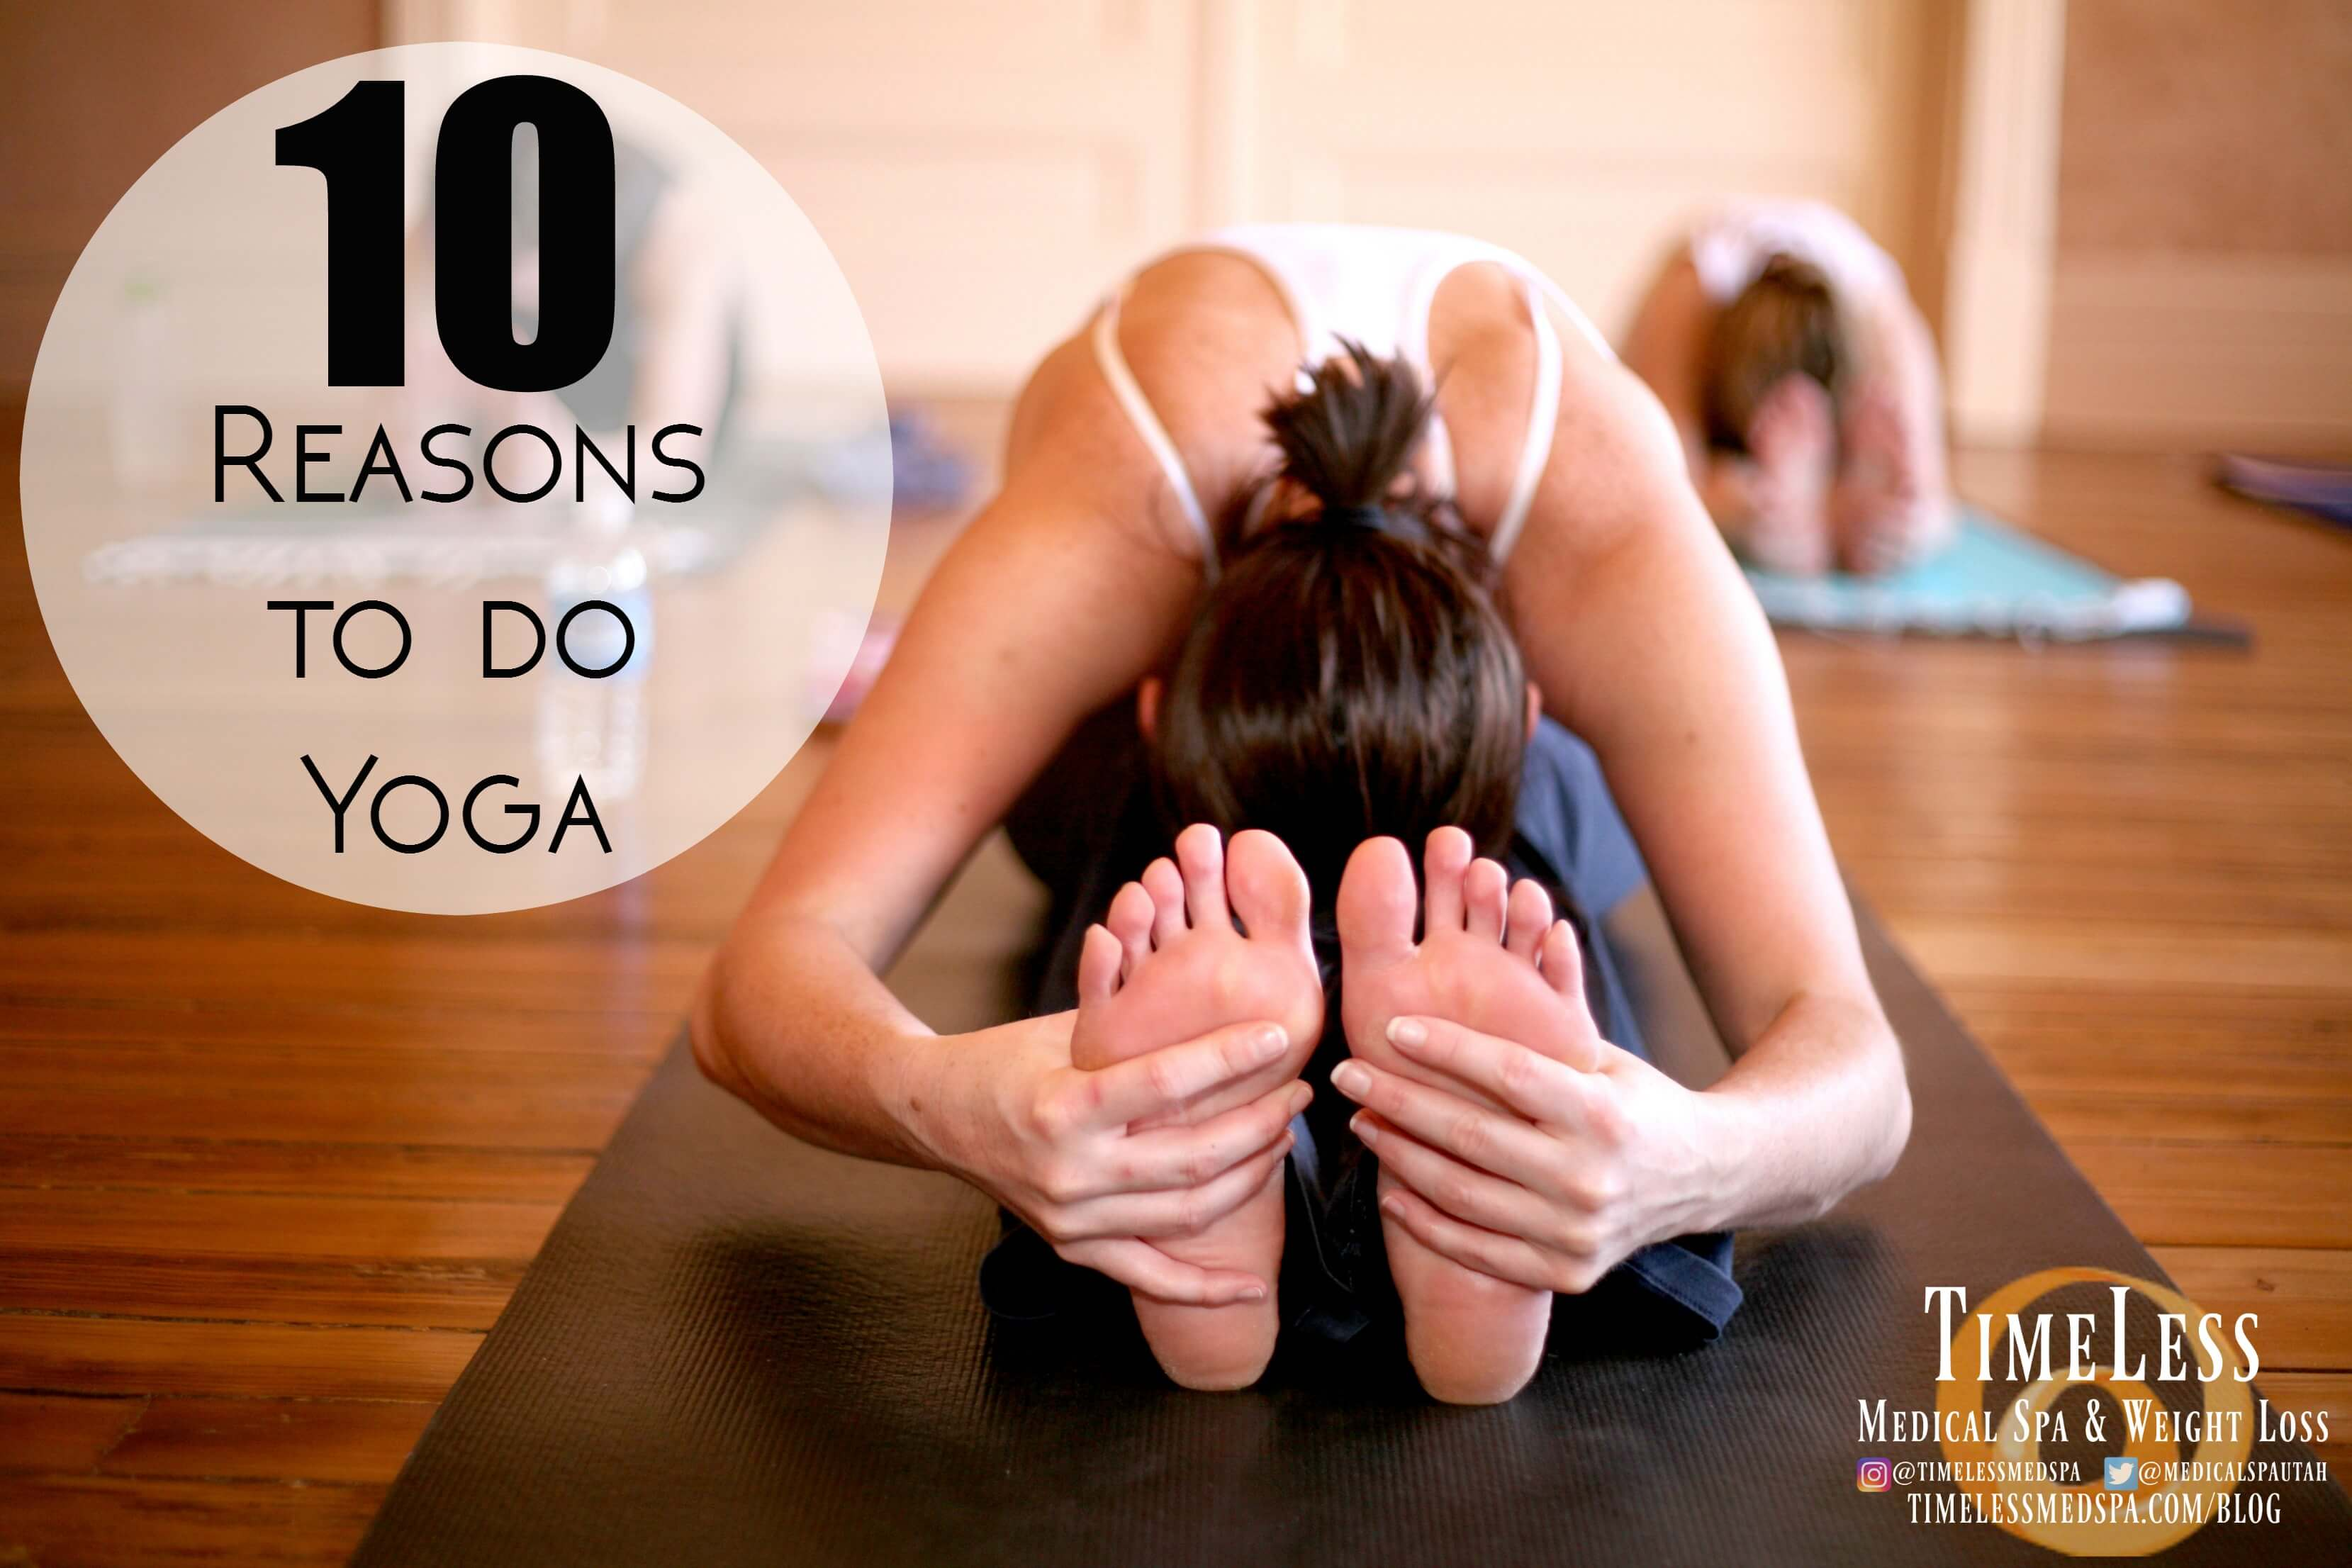 10 Reasons to do Yoga